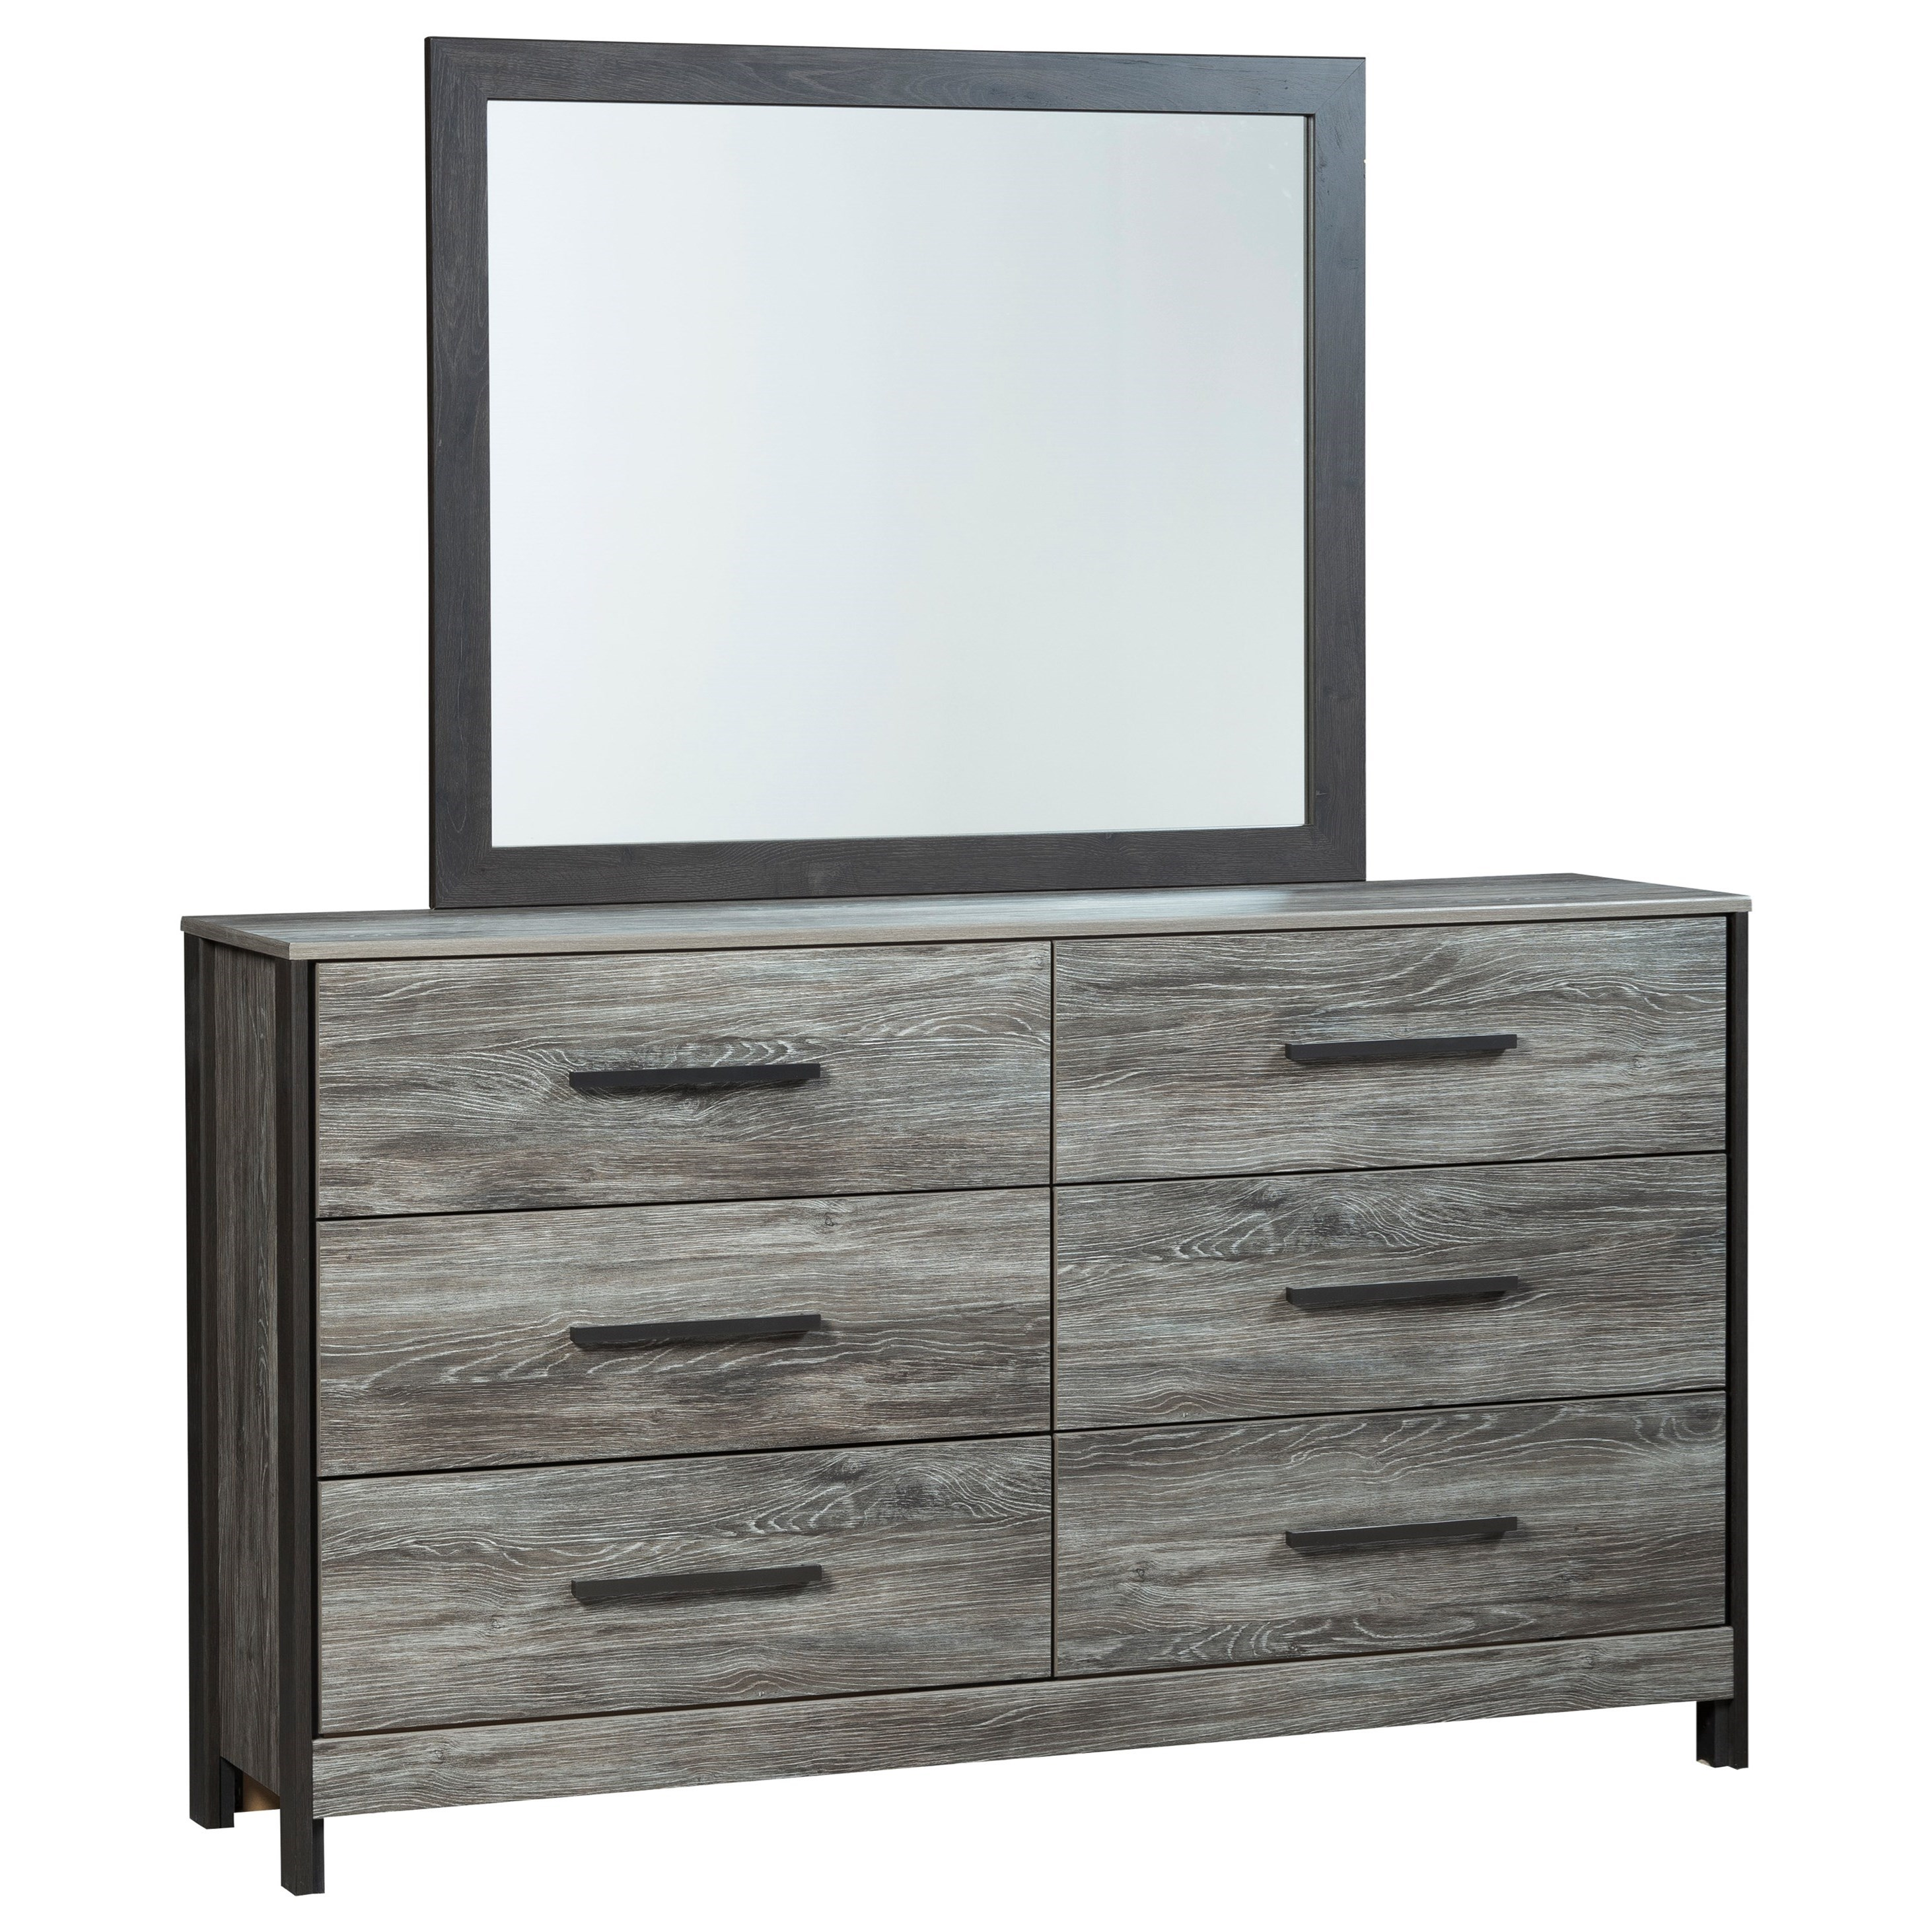 Cazenfeld Dresser & Bedroom Mirror by Signature Design by Ashley at Lindy's Furniture Company